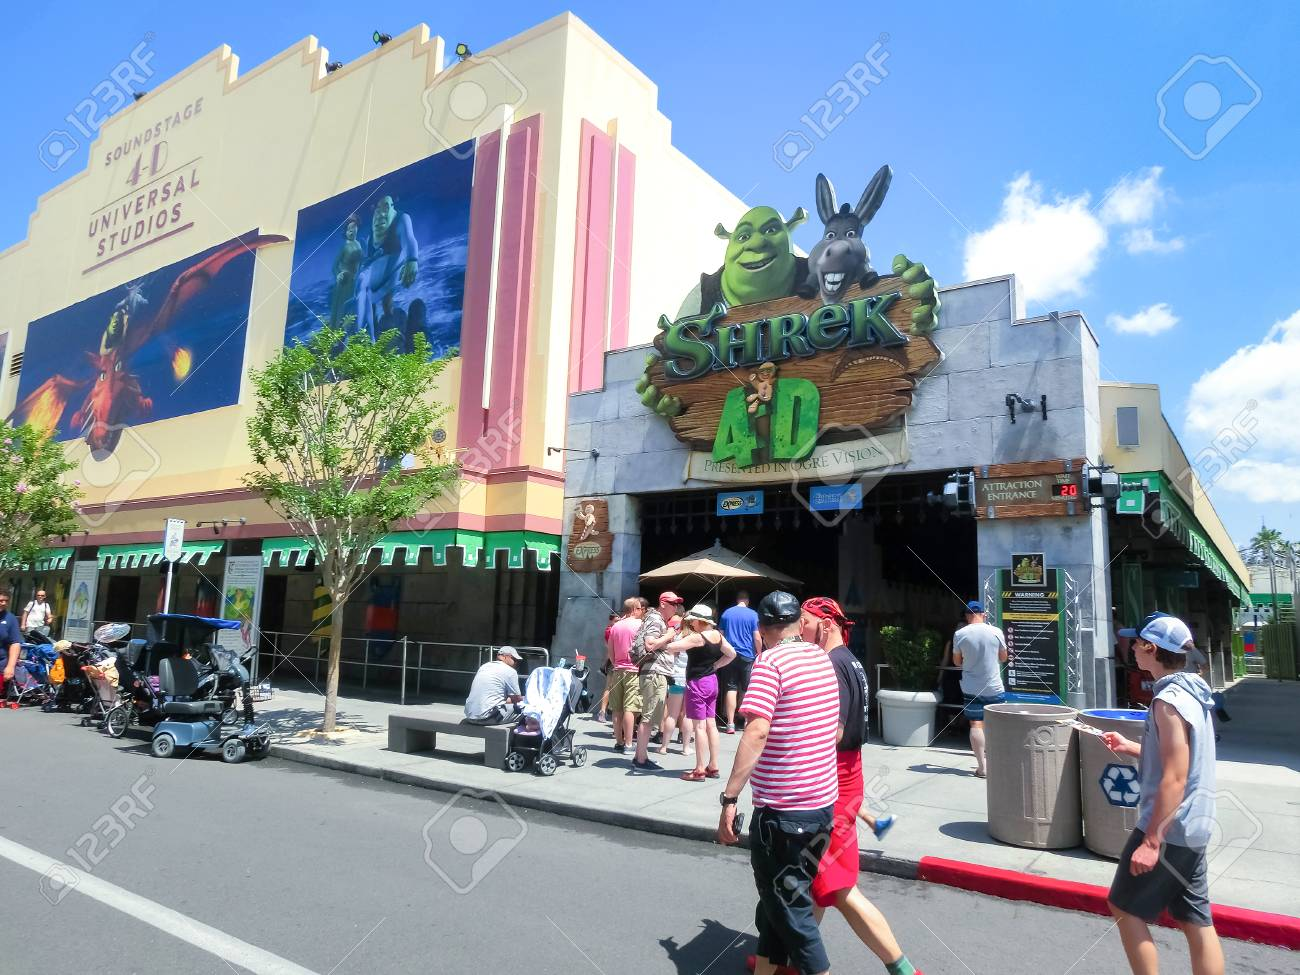 Orlando Florida Usa May 10 2018 The Entrance To Shrek 4d Stock Photo Picture And Royalty Free Image Image 112425395